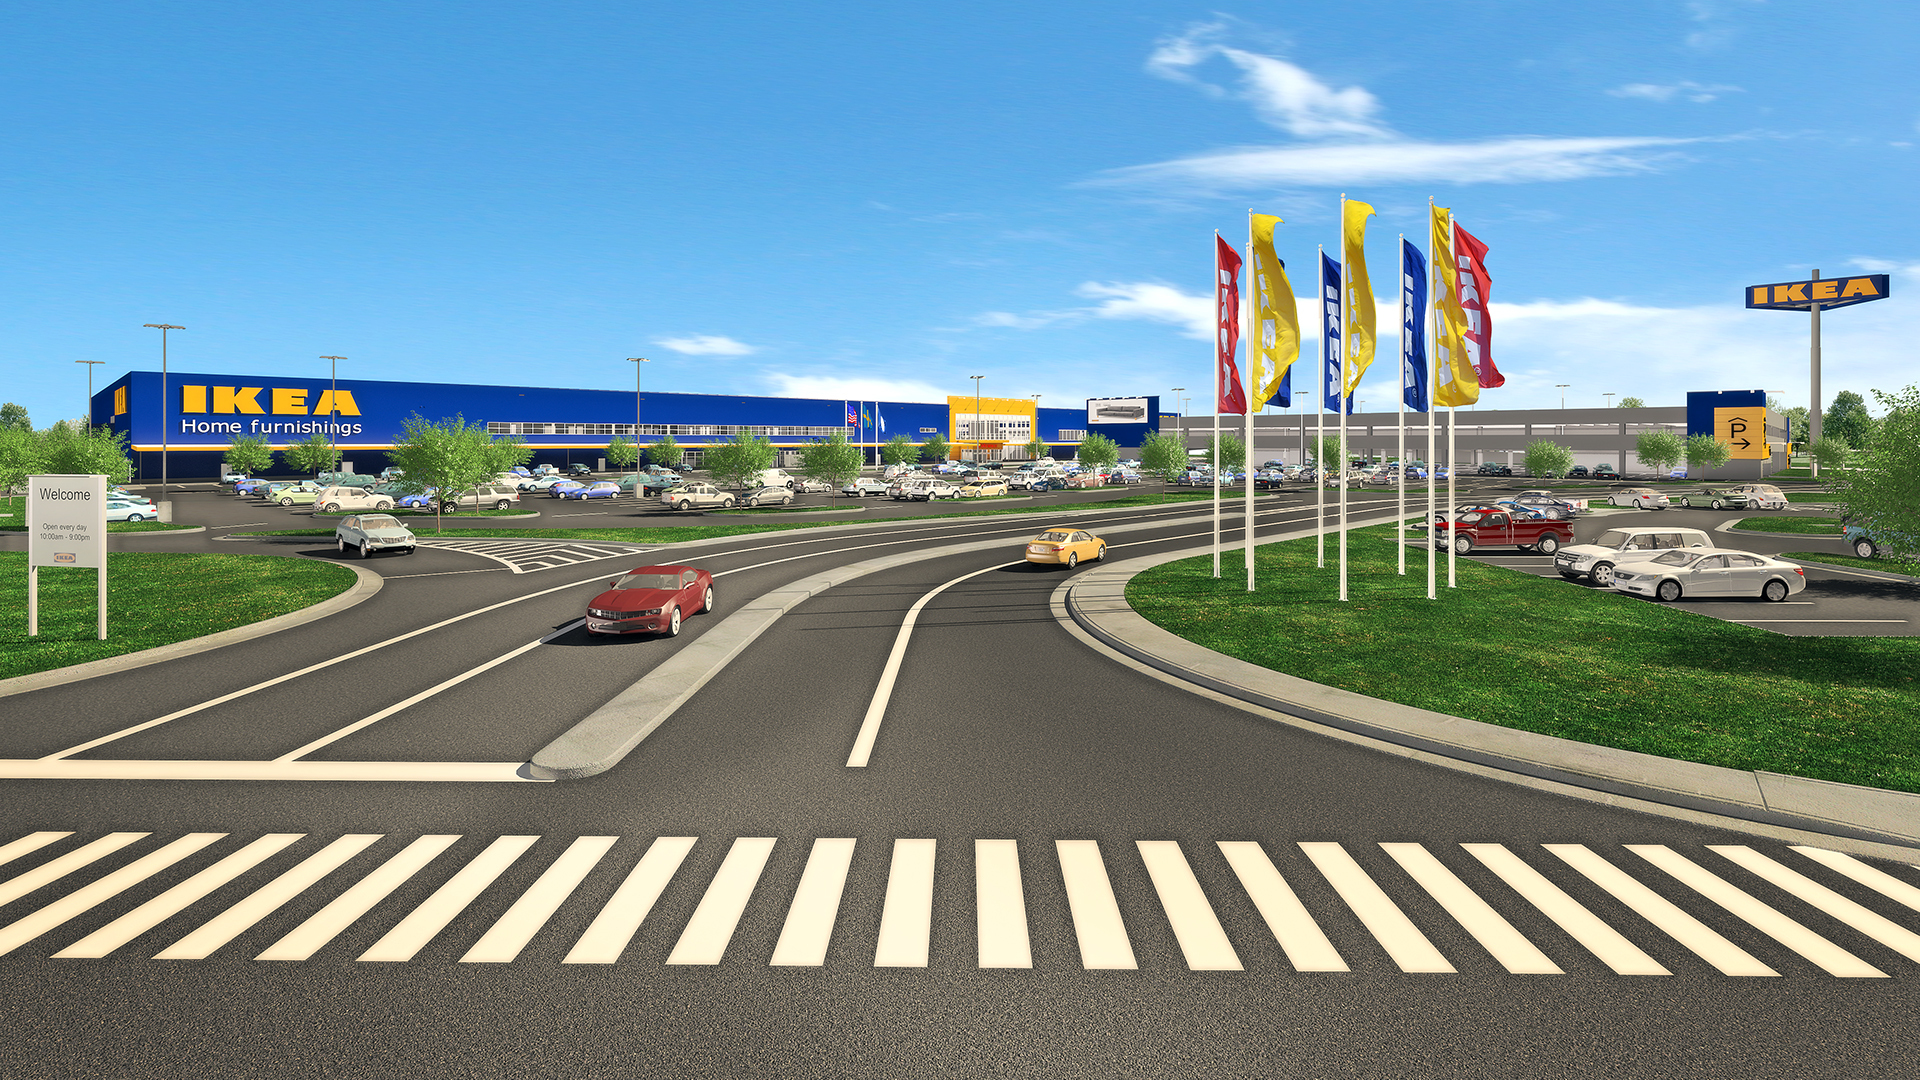 Swedish home furnishings retailer ikea secures contractors for Ikea outlet charlotte nc